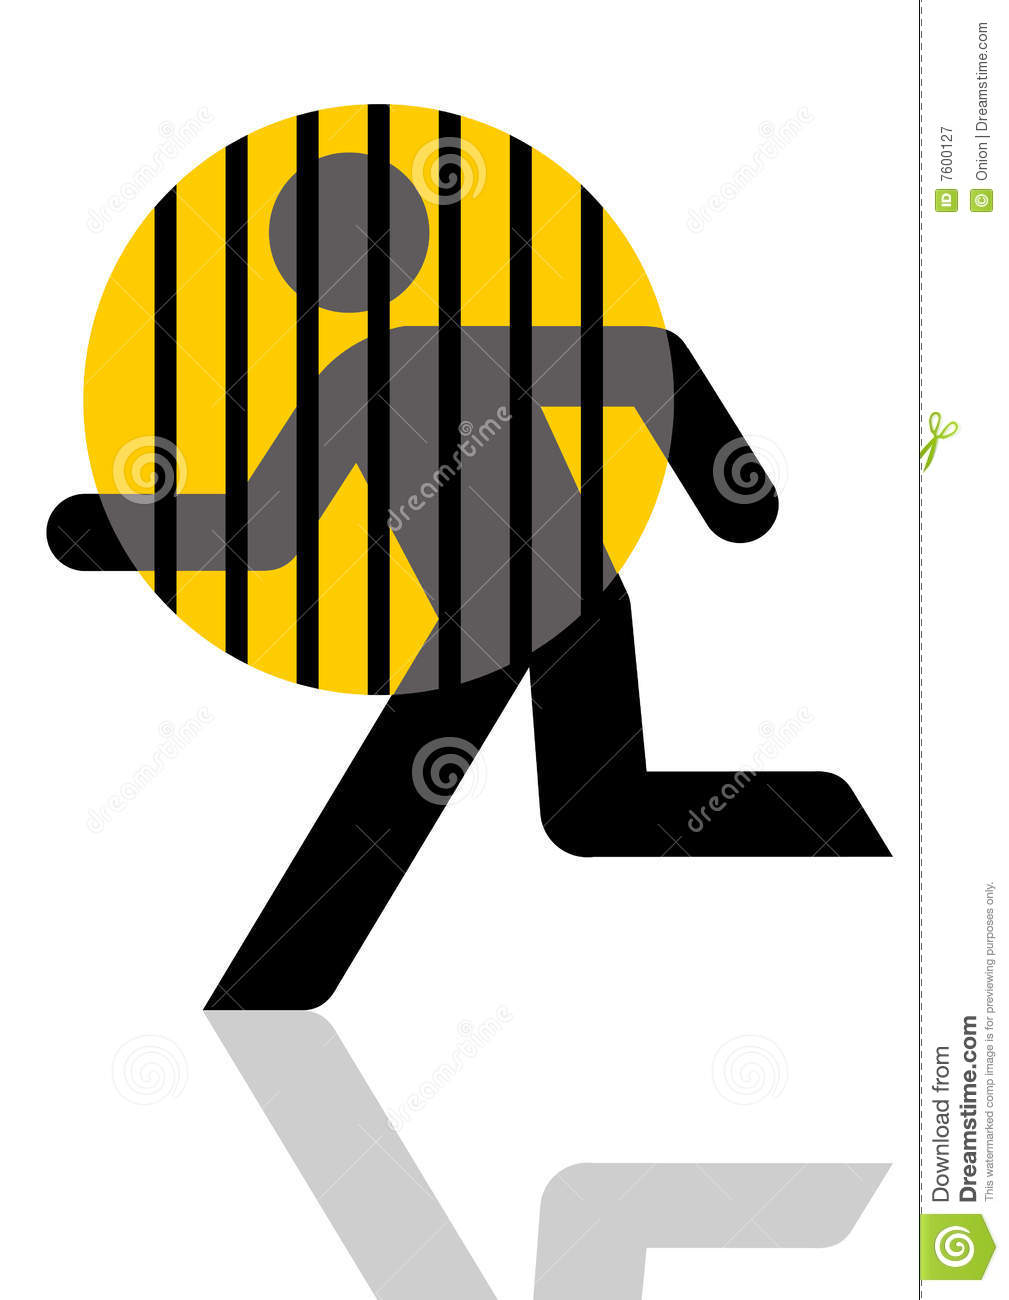 Prisoner Escaping Graphic Royalty Free Stock Photography.